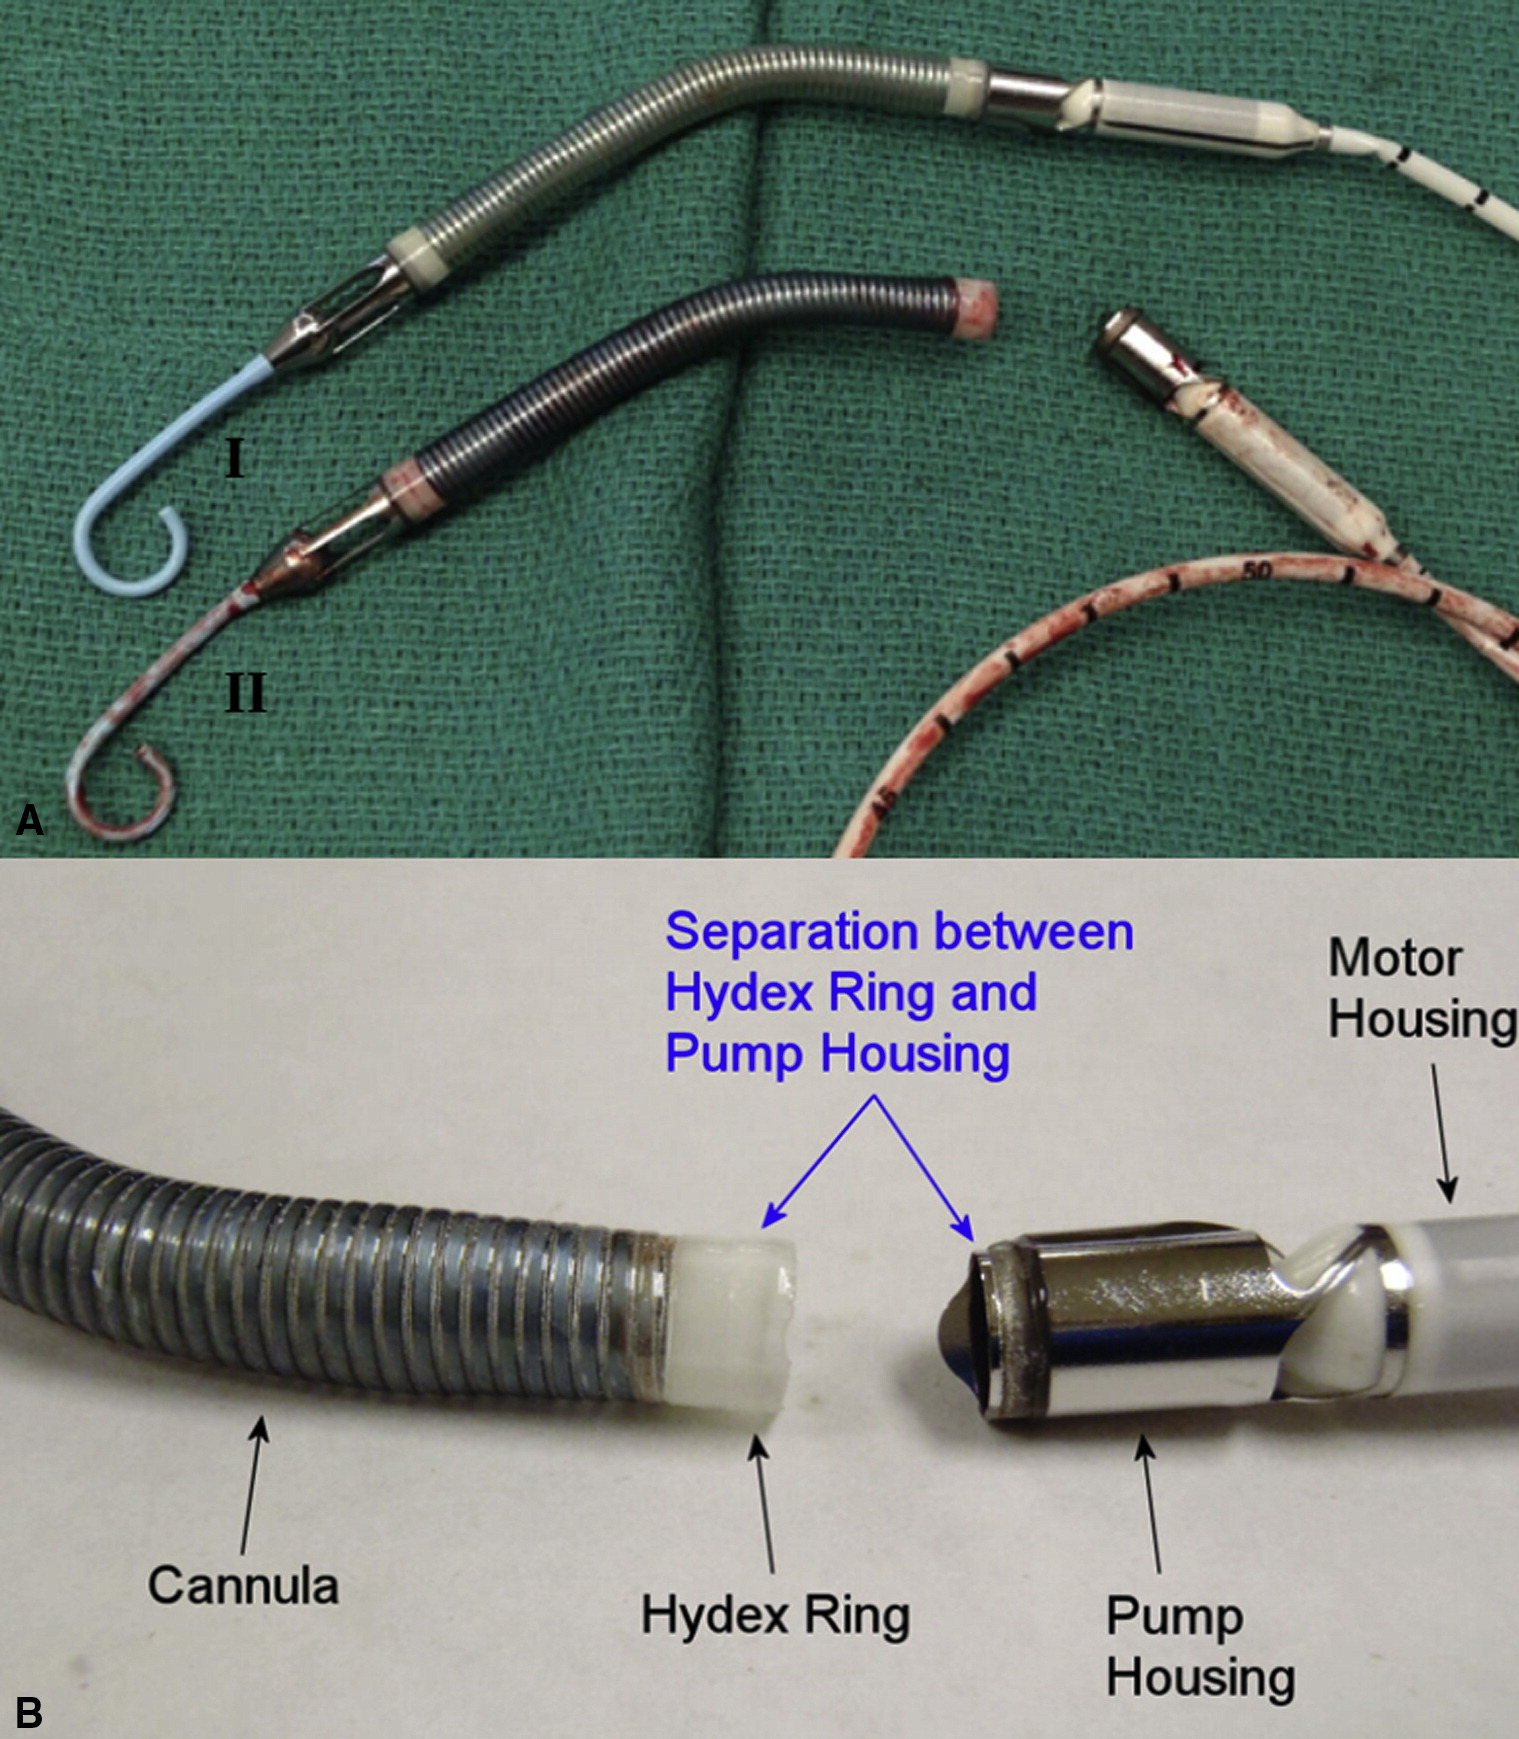 Unconventional use of the fogarty embolization catheter for Danvers motor co inc